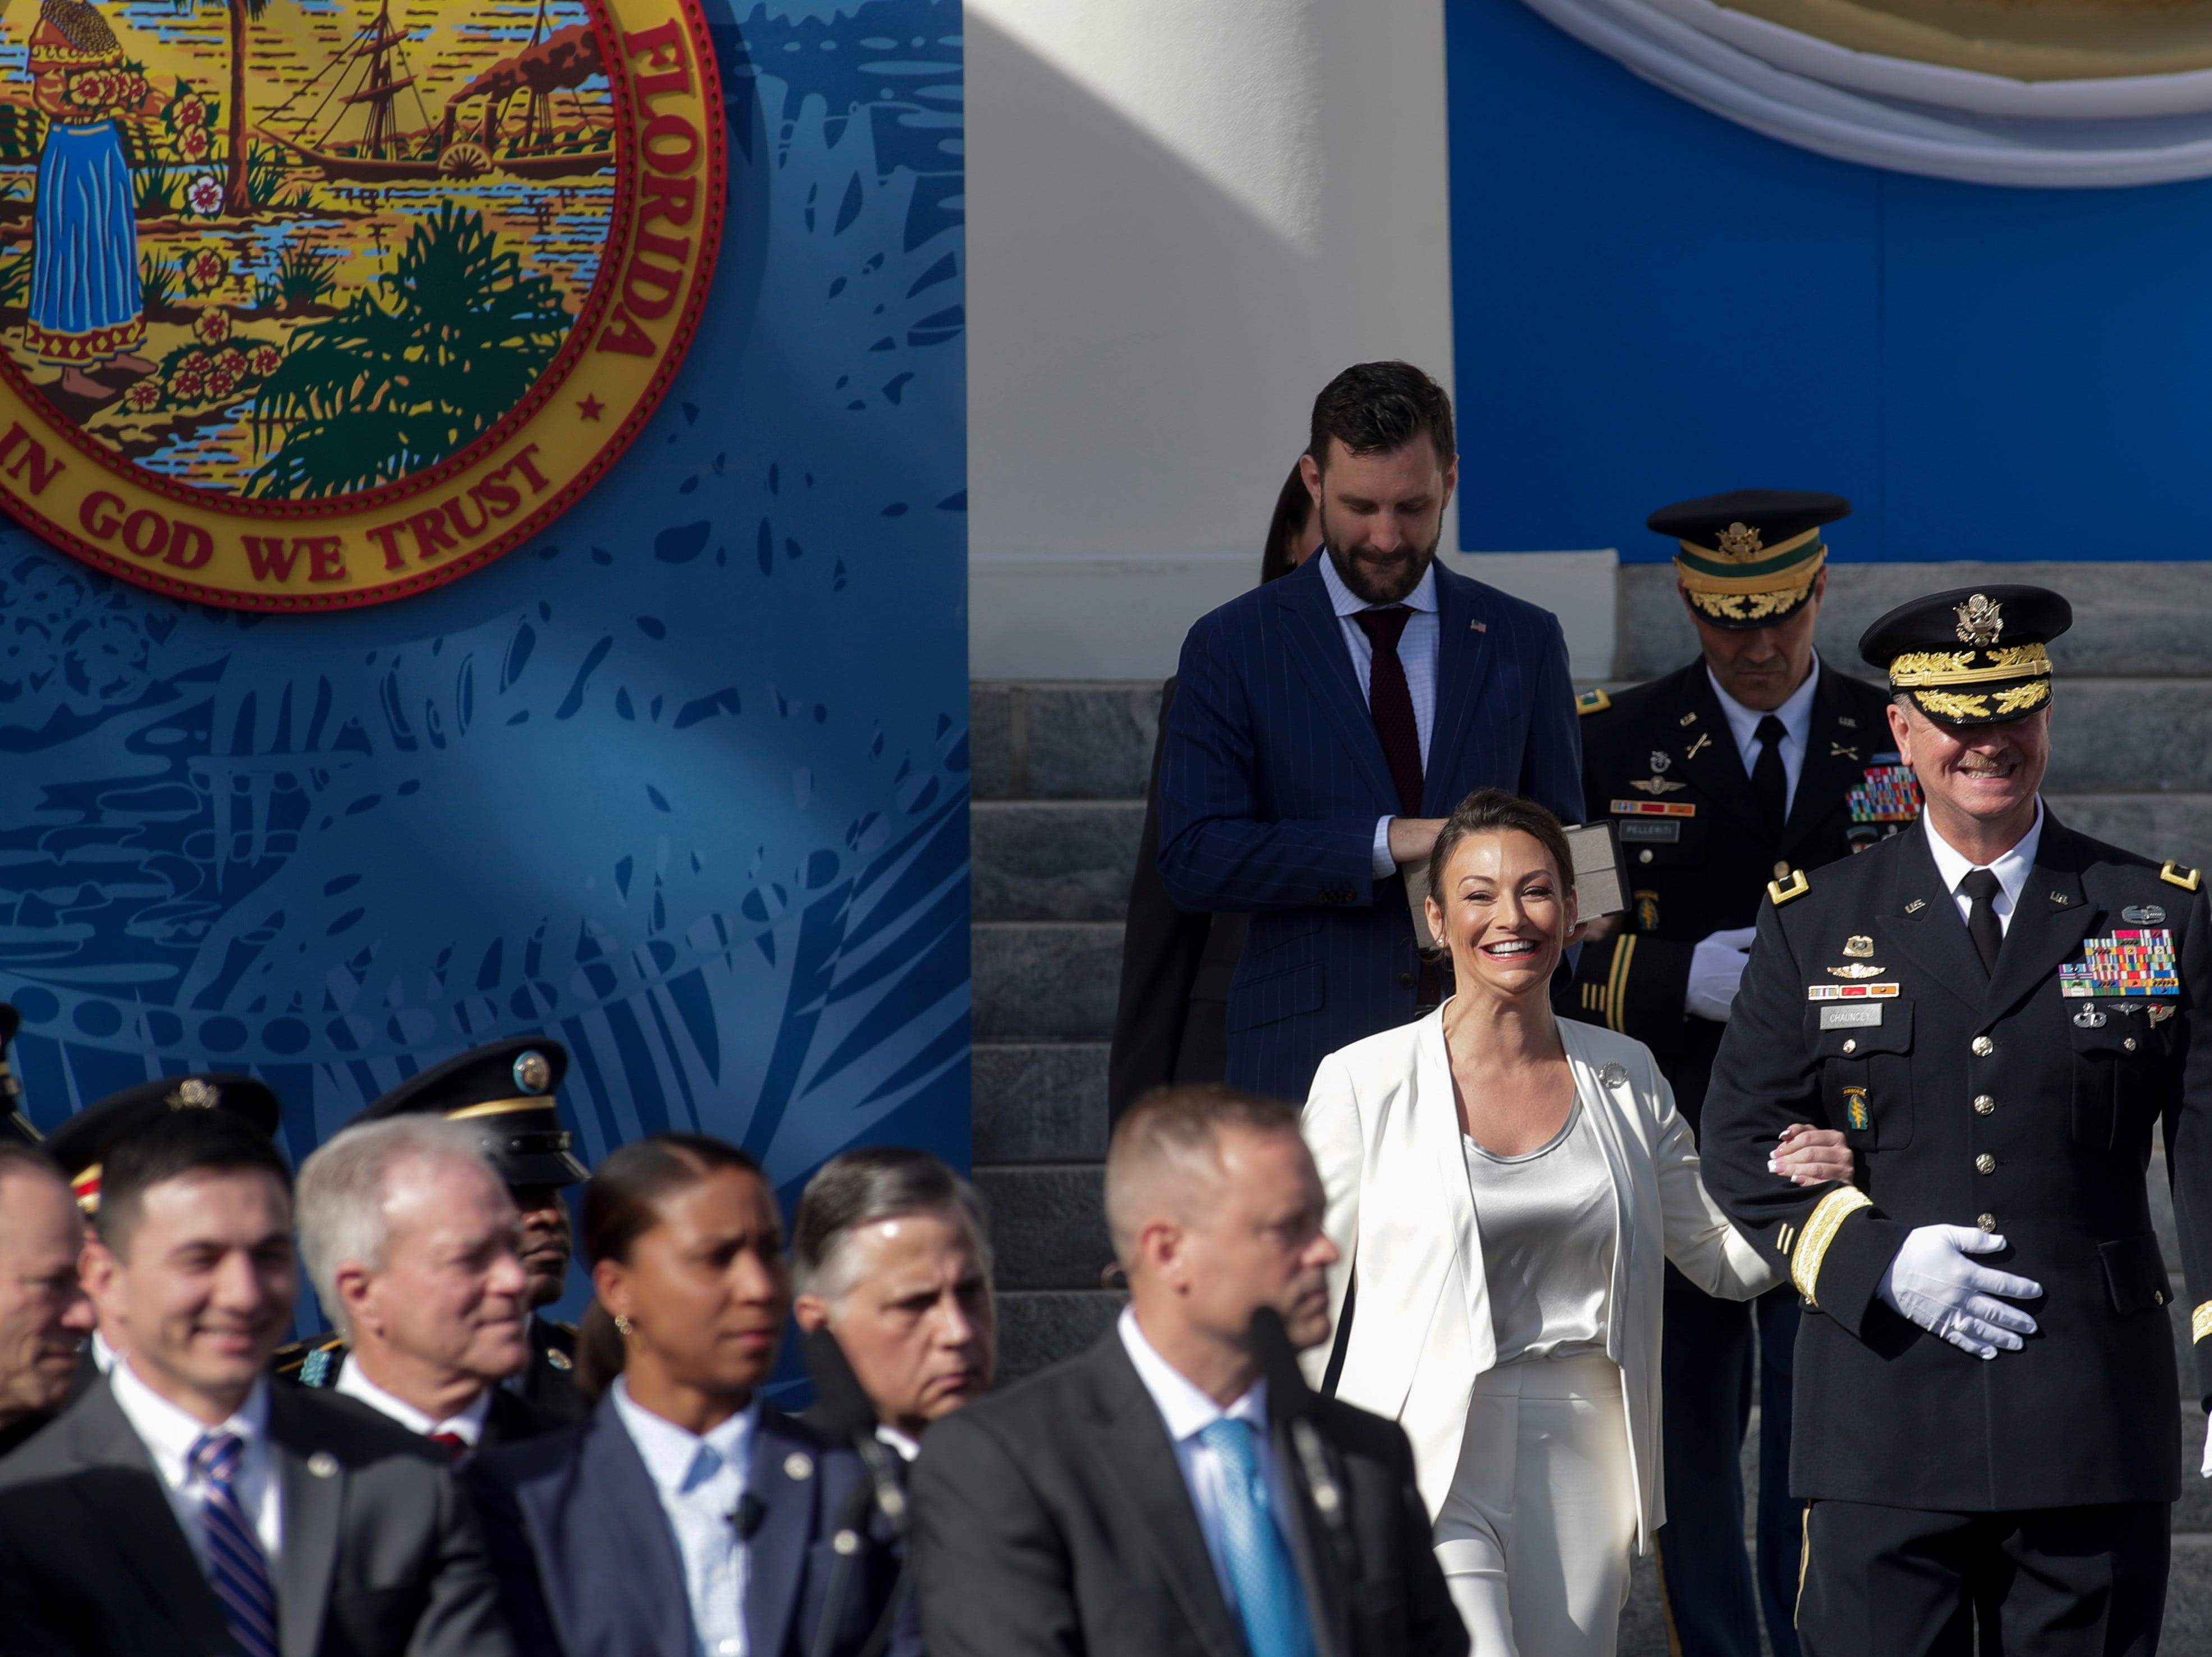 Commissioner of Agriculture and Consumer Services Nikki Fried is escorted to her seat during the 2019 inauguration ceremony on the steps of the Historic Capitol Building in Tallahassee Tuesday, Jan. 8, 2019.